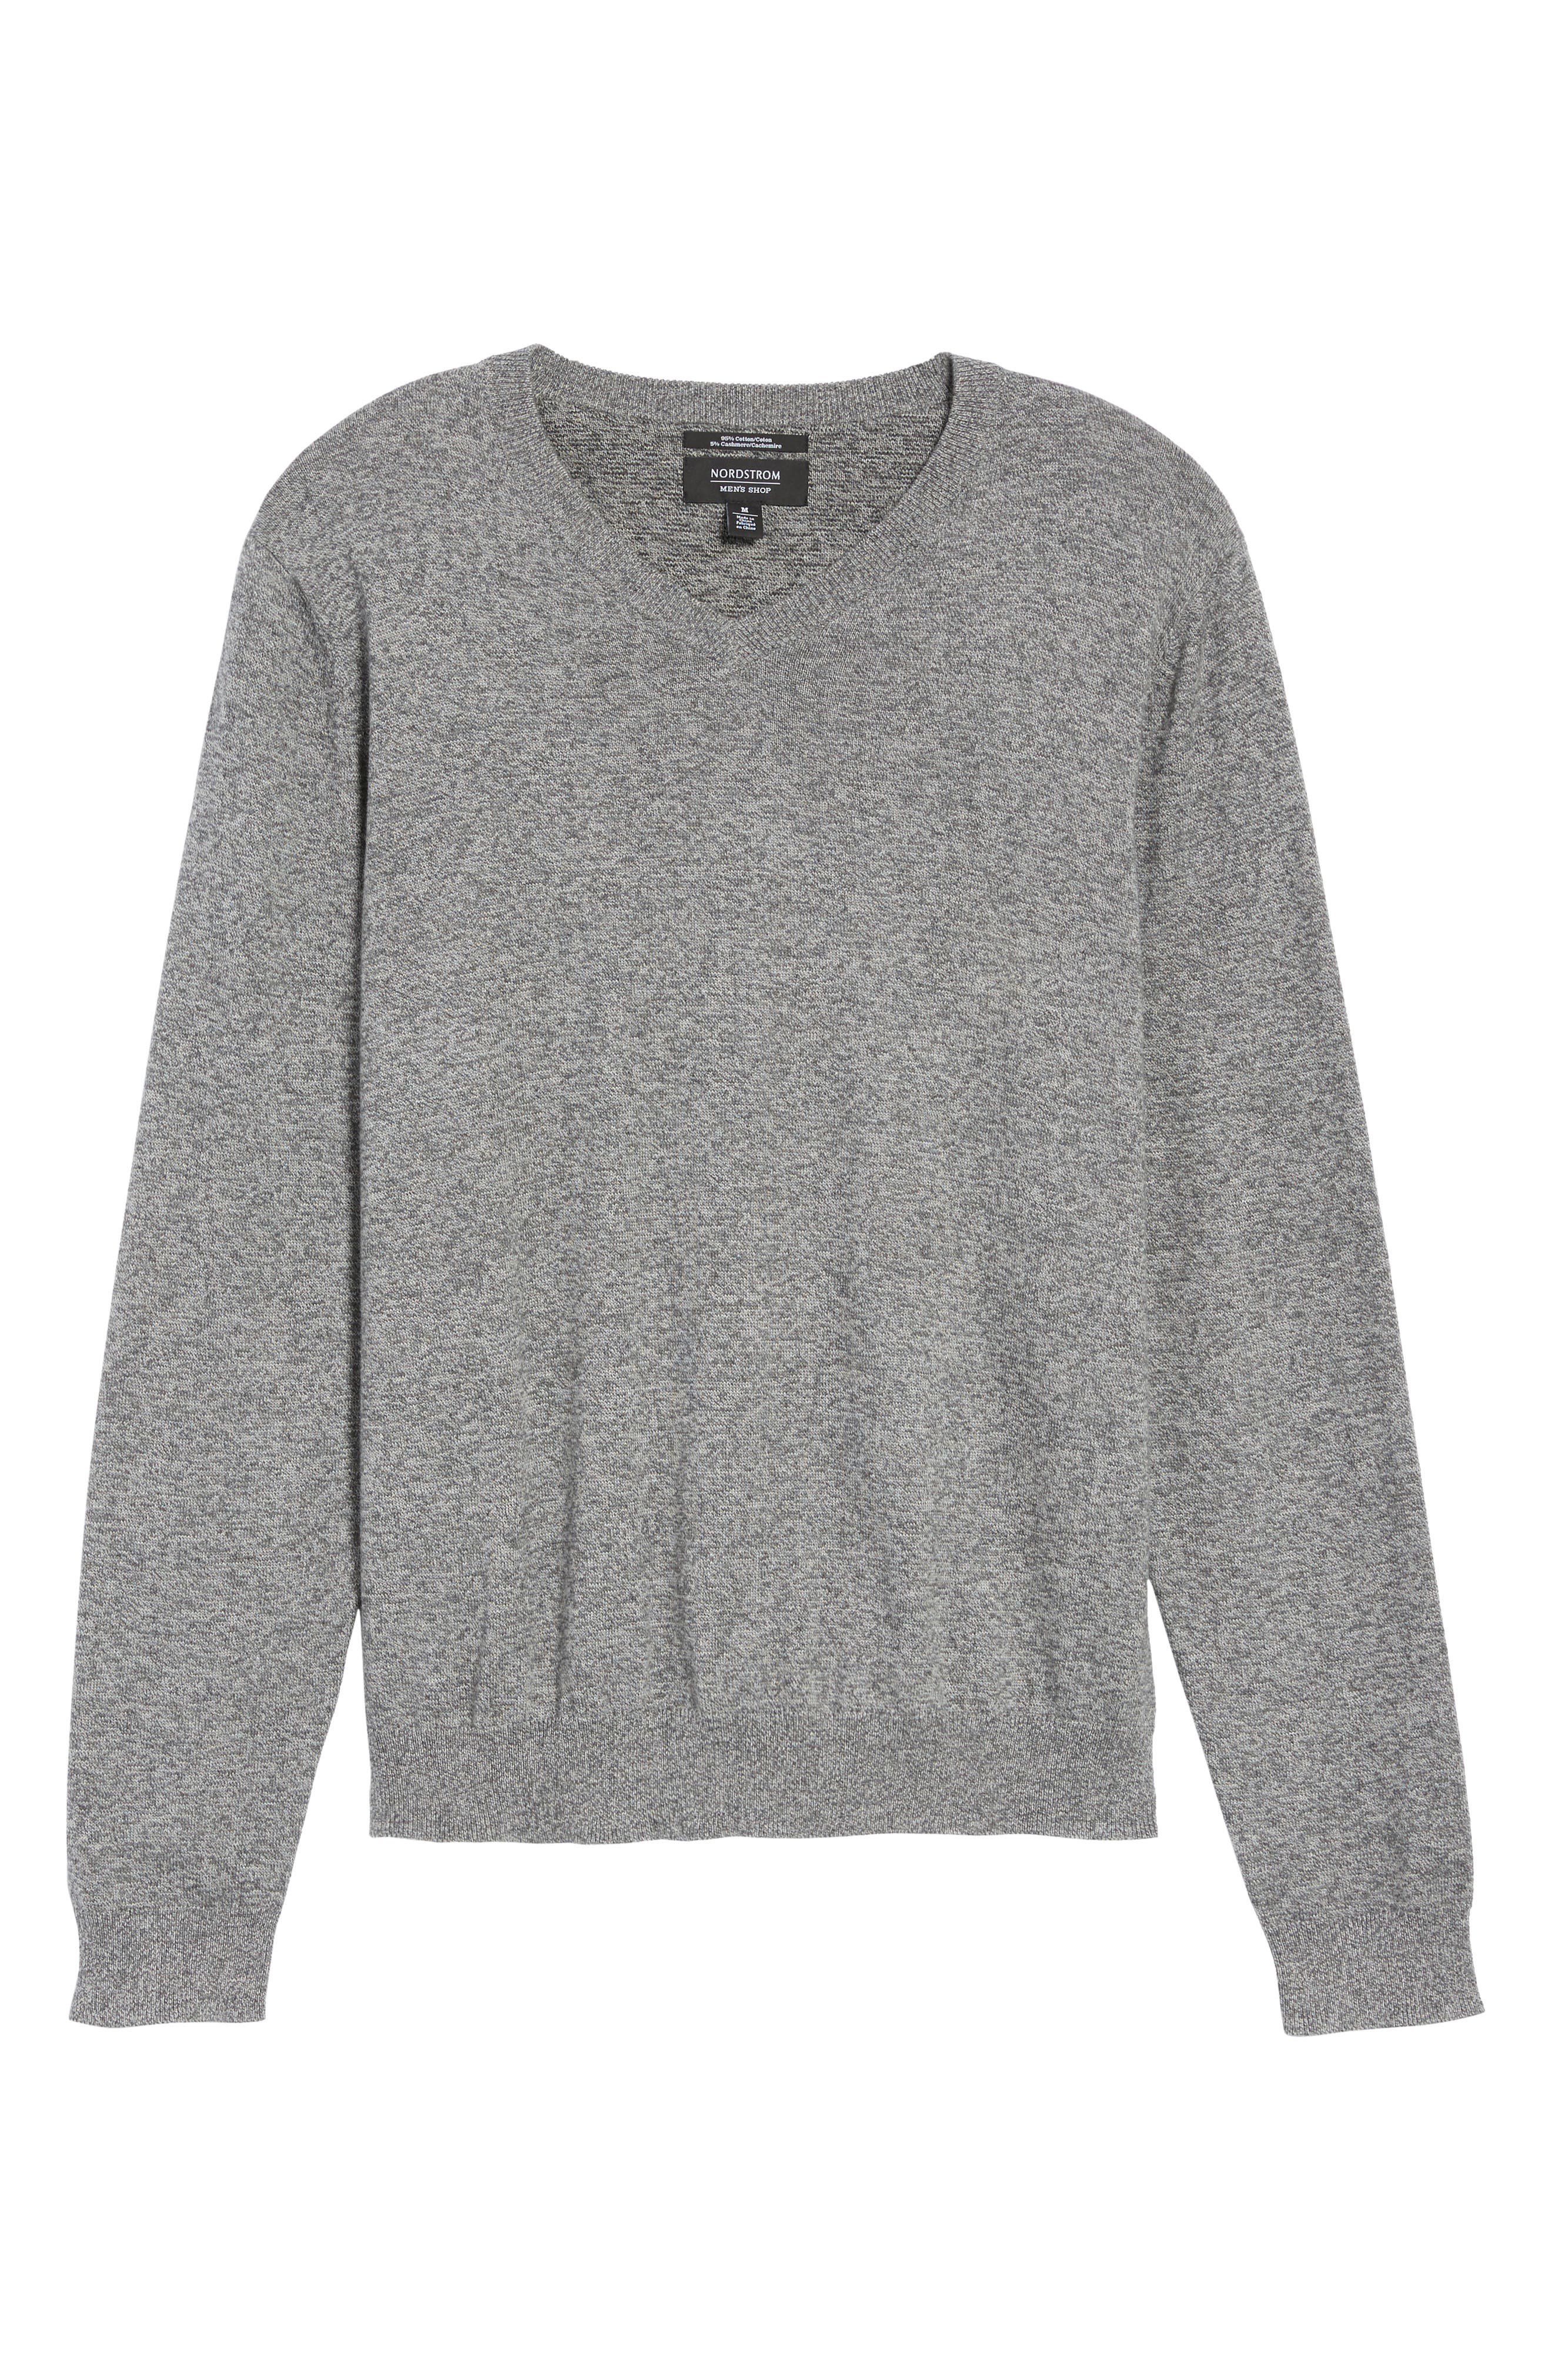 V-Neck Sweater,                             Alternate thumbnail 6, color,                             032